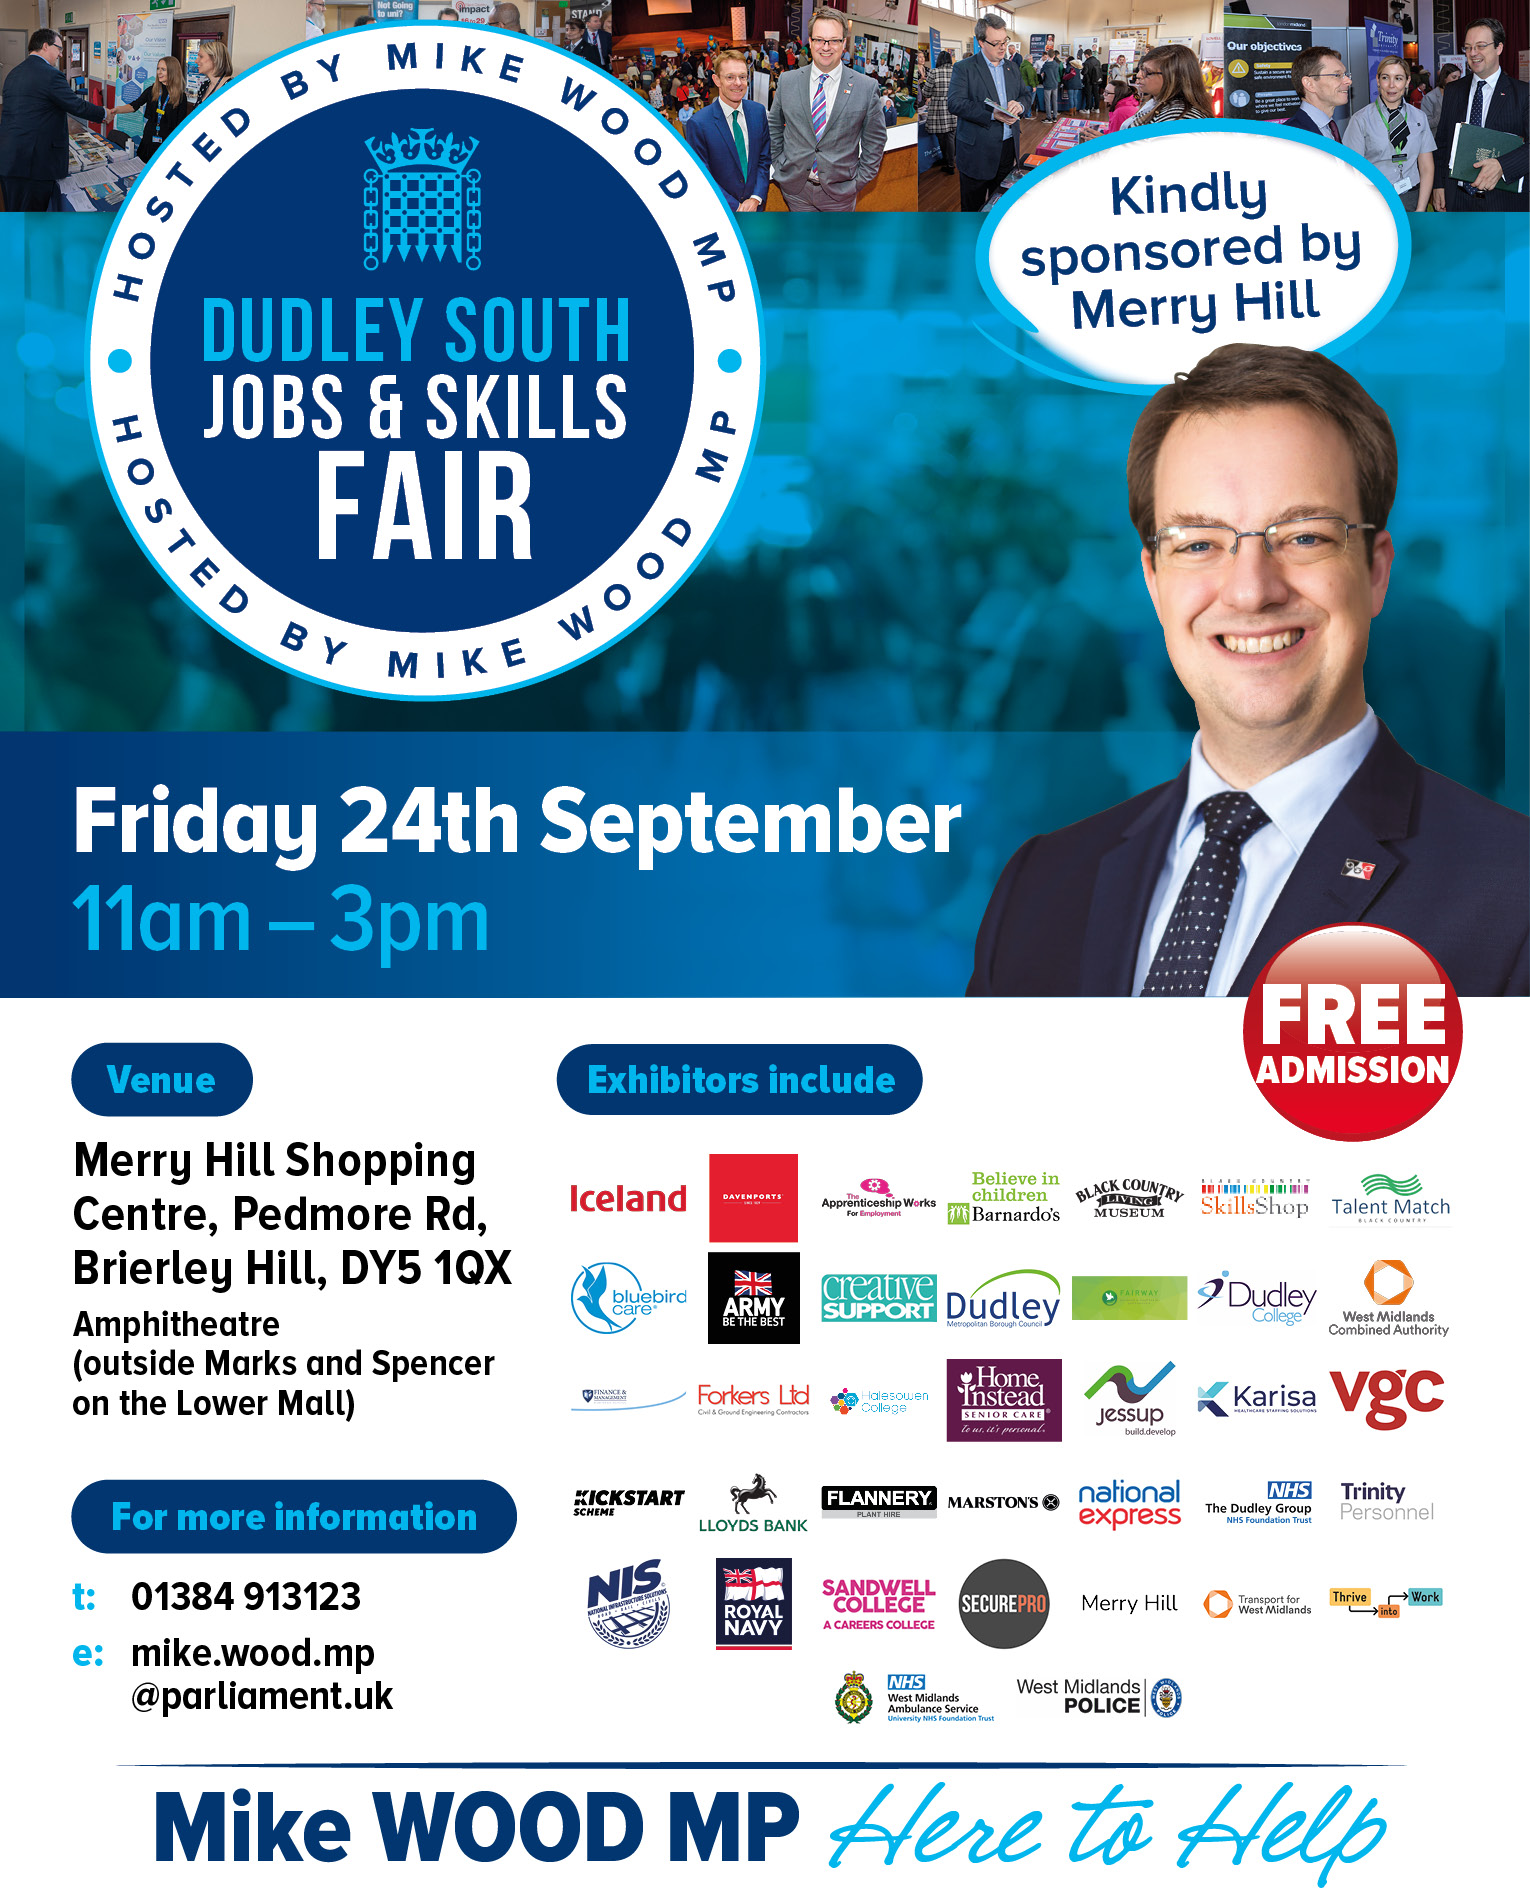 Dudley South Jobs and Skills Fair - Friday 24th September 2021